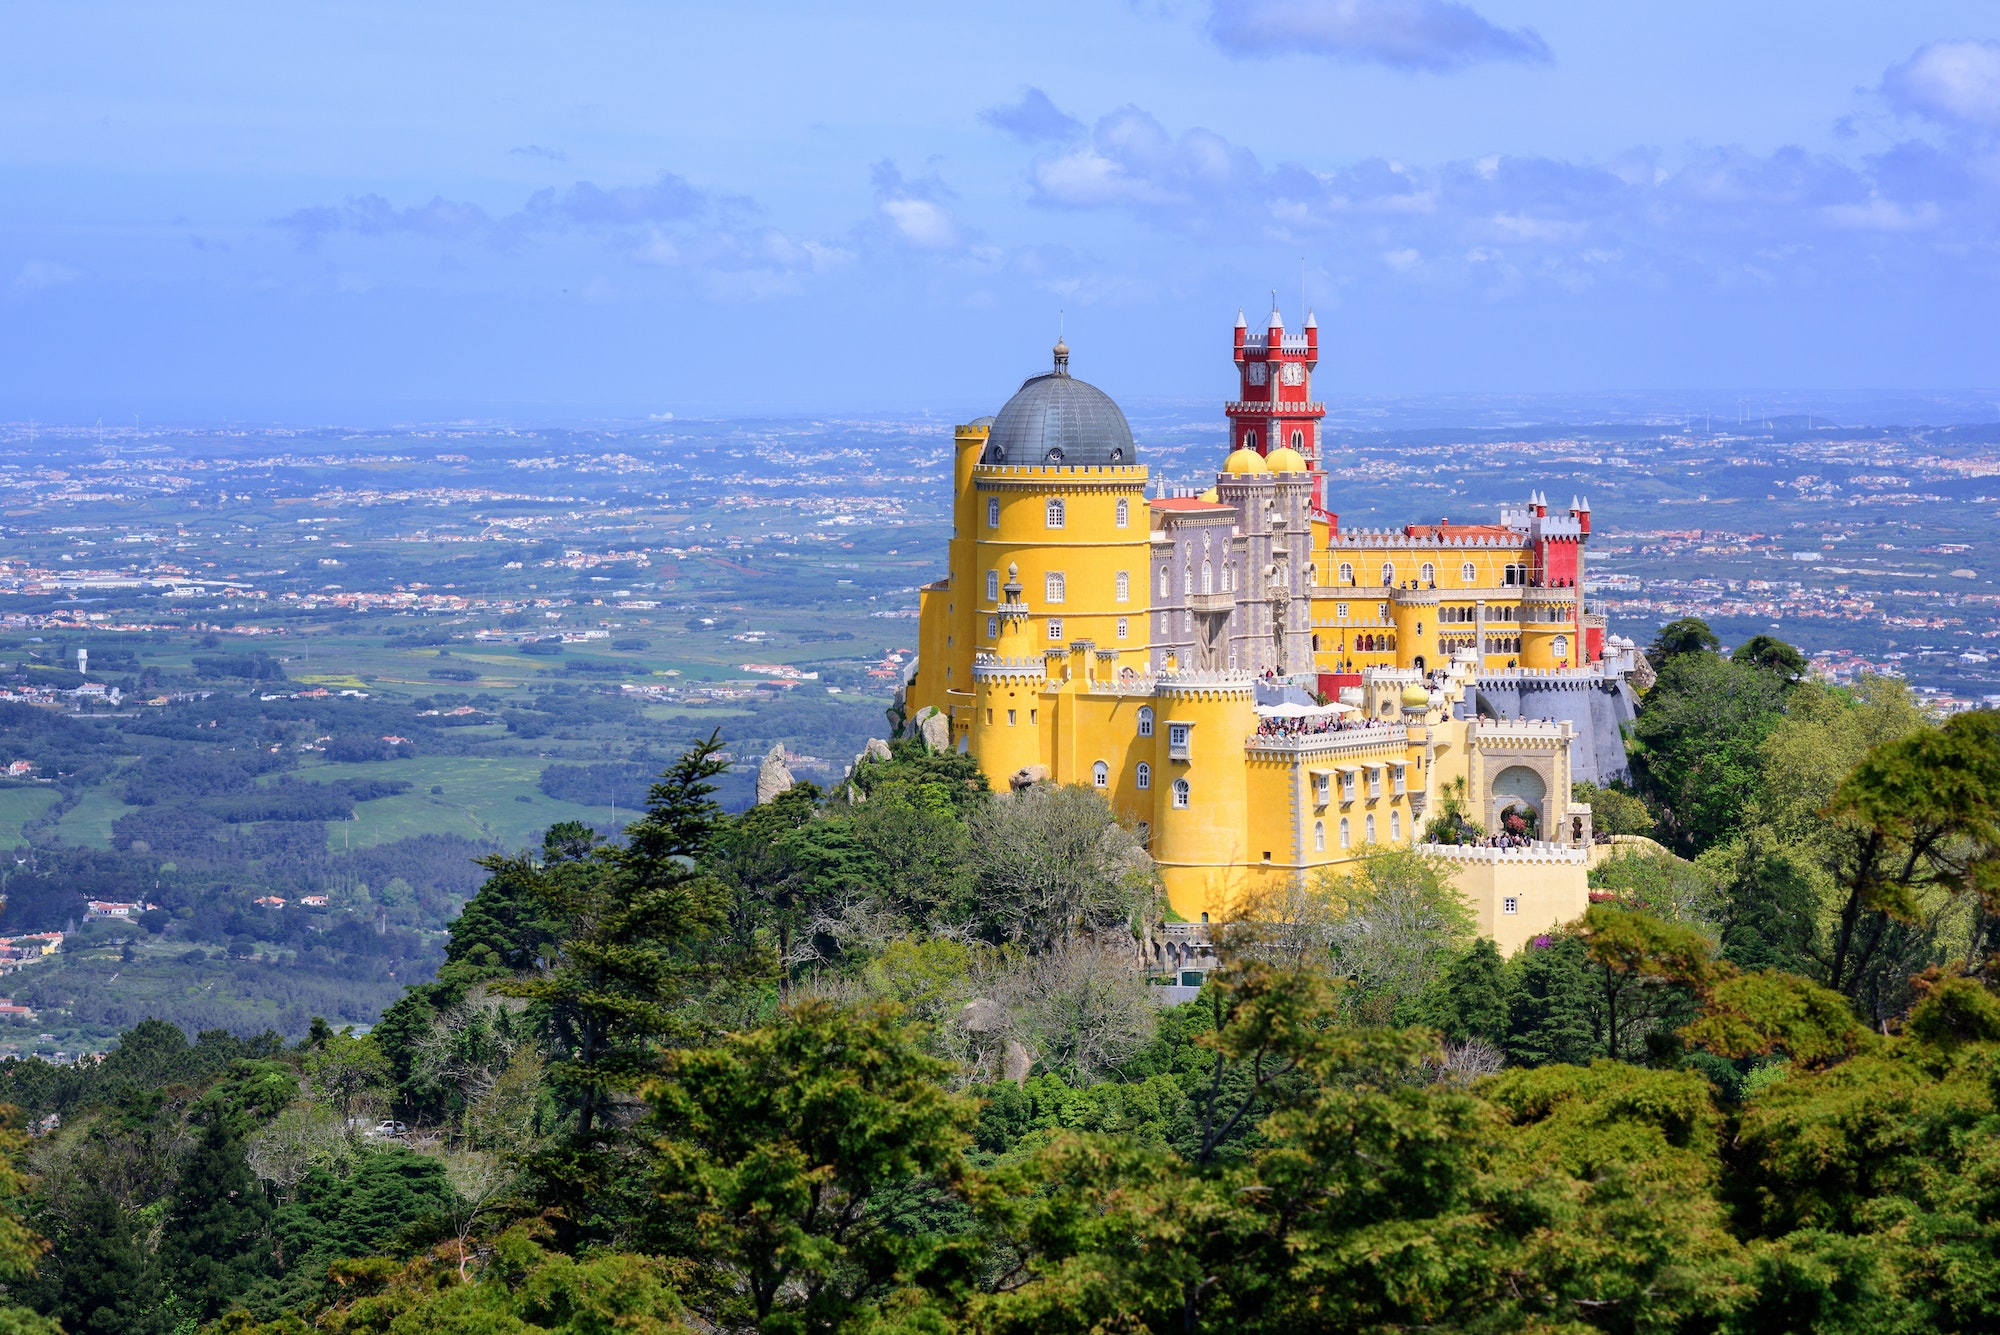 The Pena Palace sits northwest of Lisbon in Portugal's Sintra Mountains.